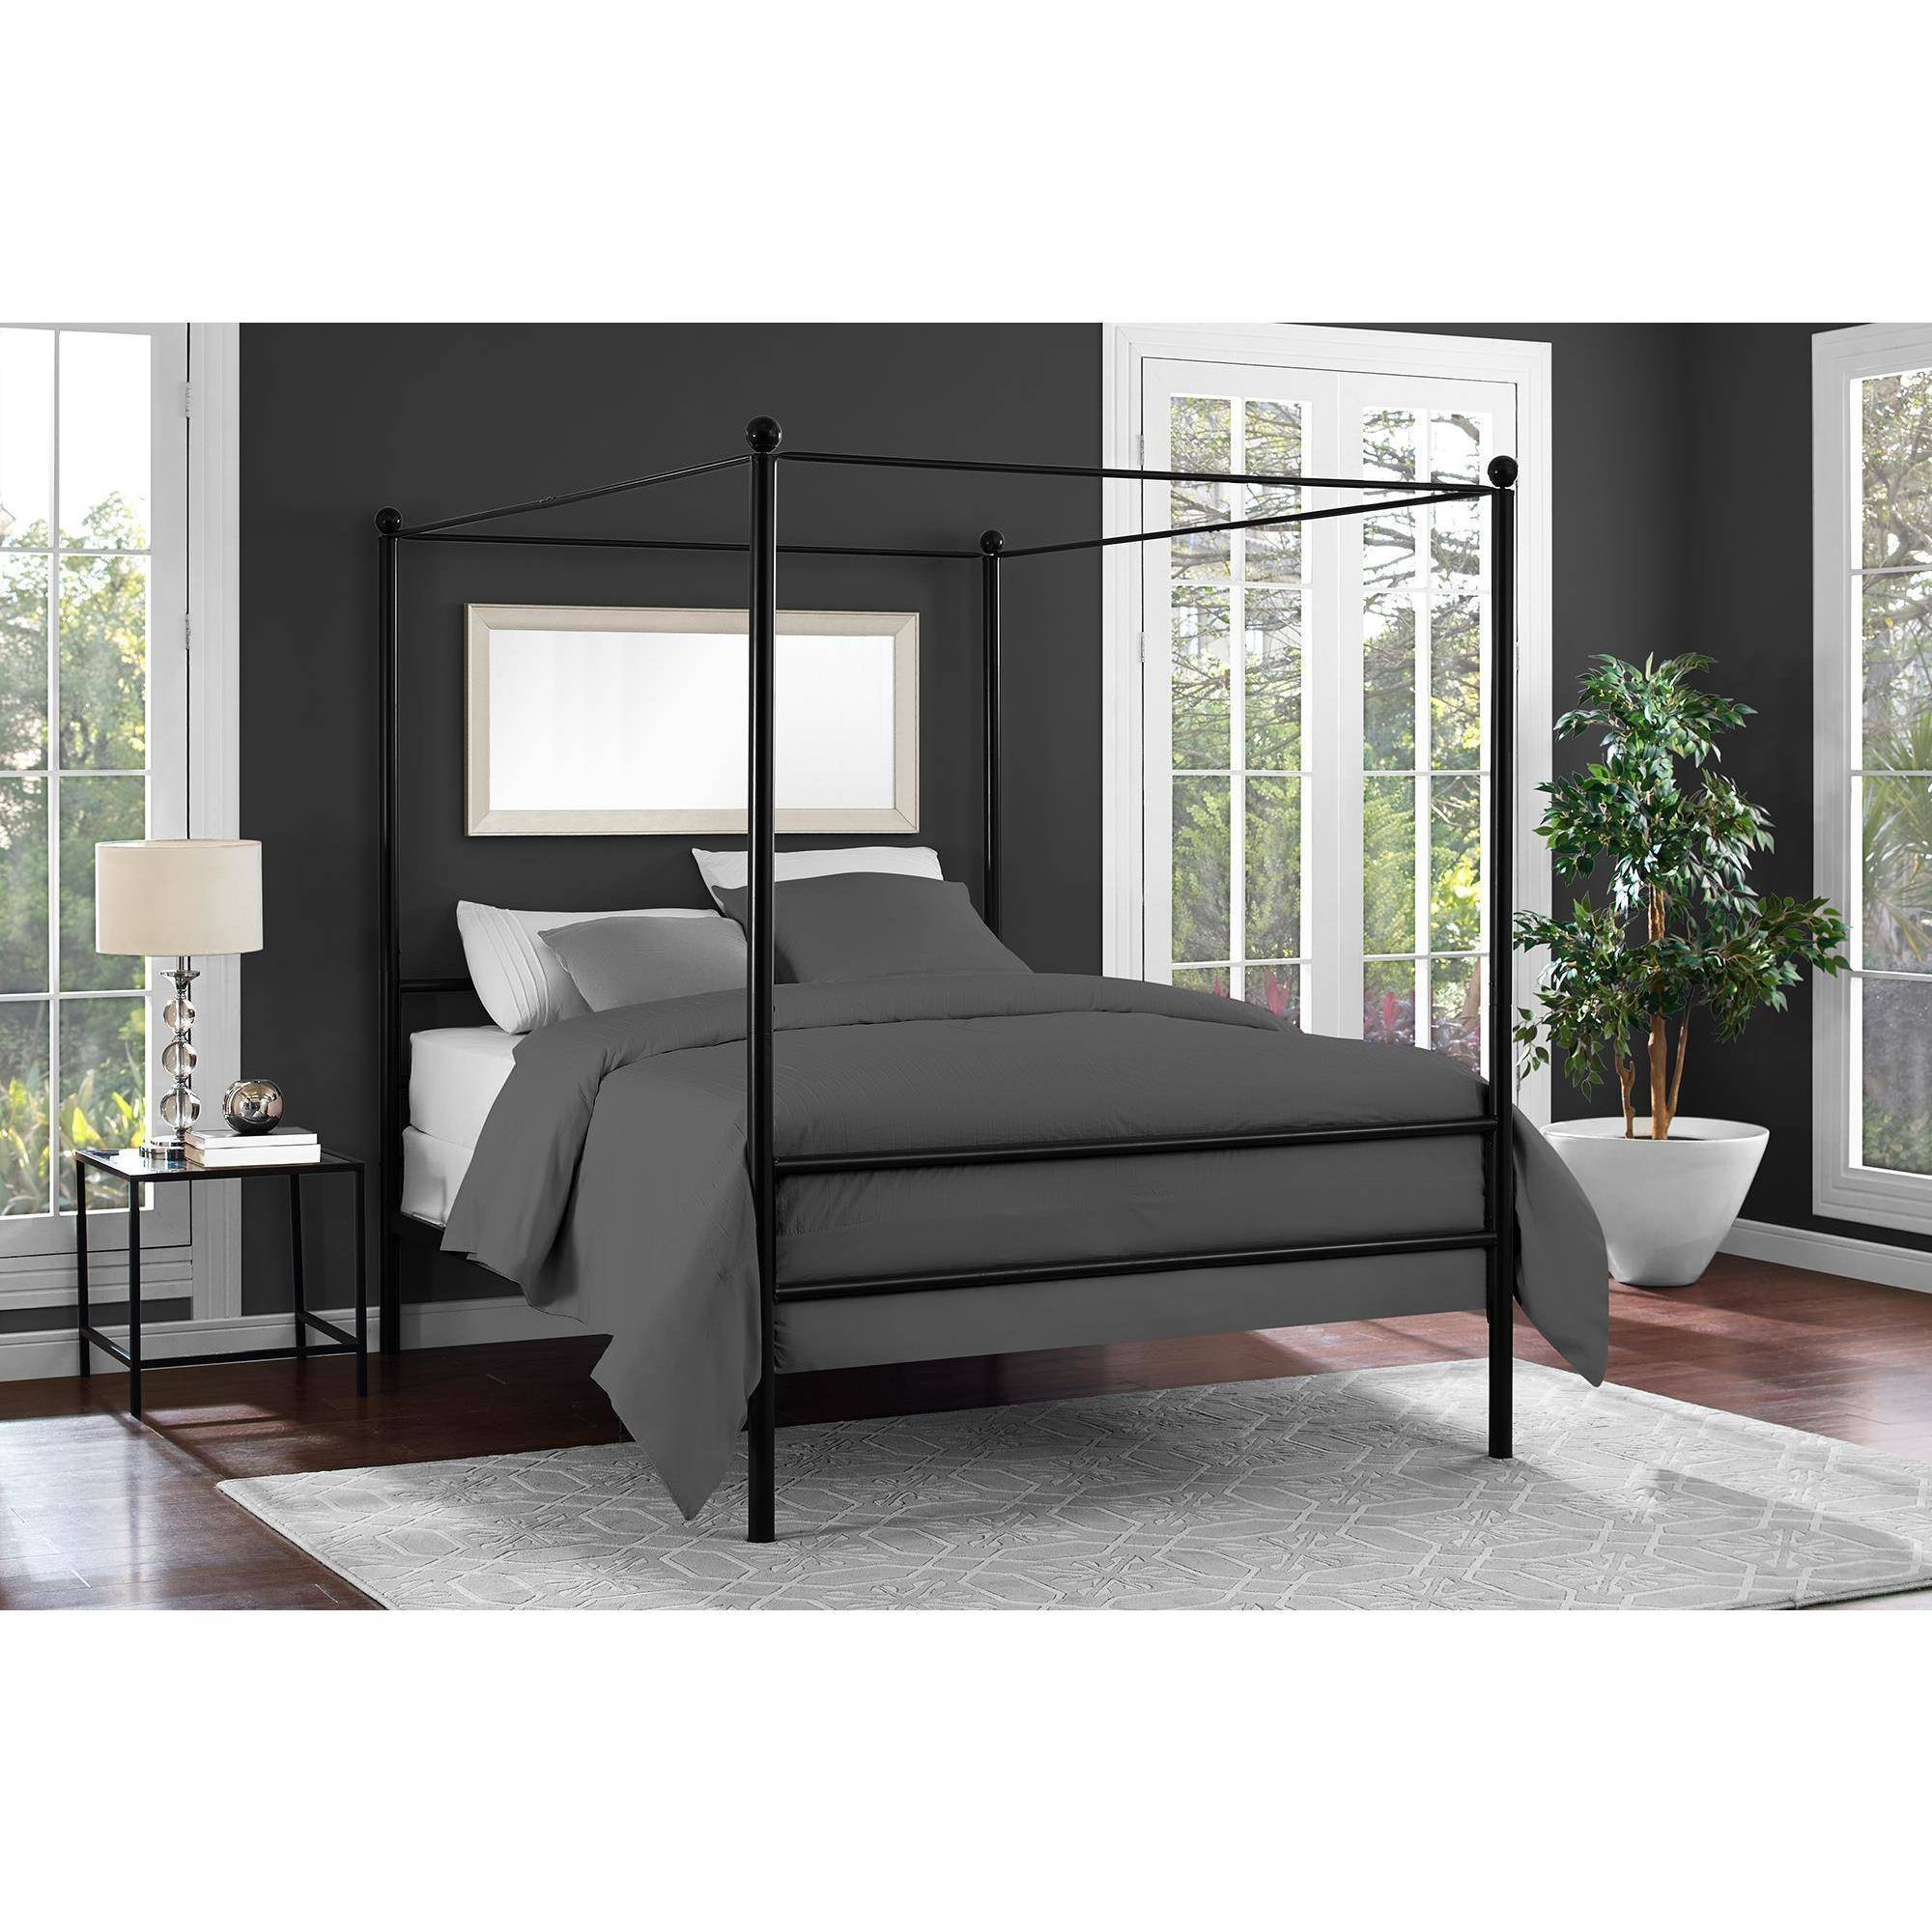 Black Four Post Bed Mainstays Metal Canopy Bed Multiple Colors Multiple